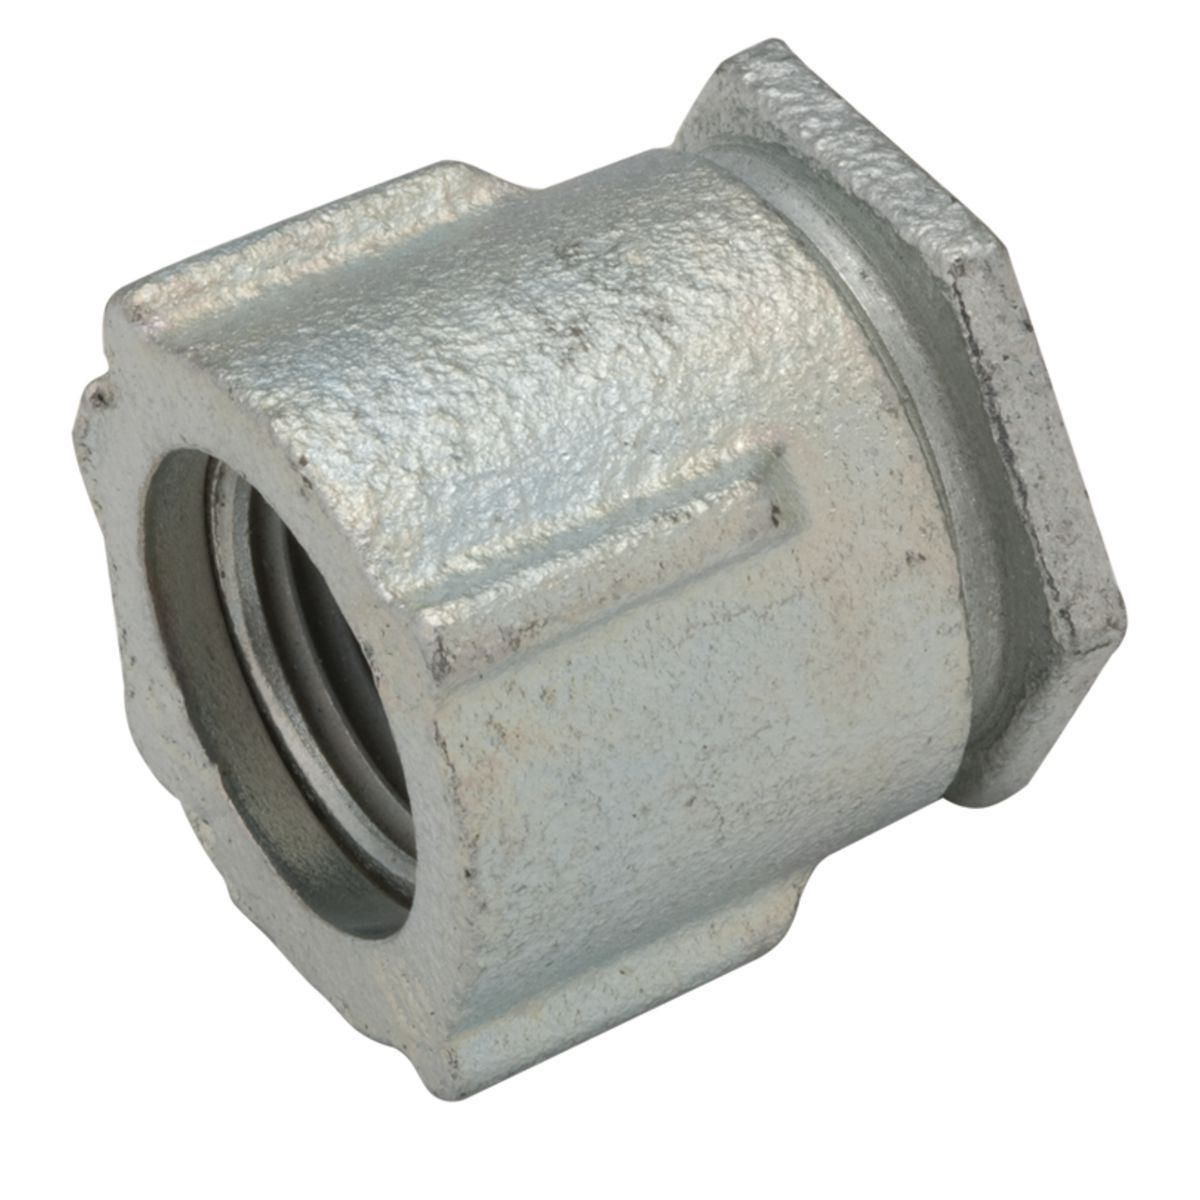 RGD/IMC COUPLING 1-1/2 IN 3PC MALL IRON